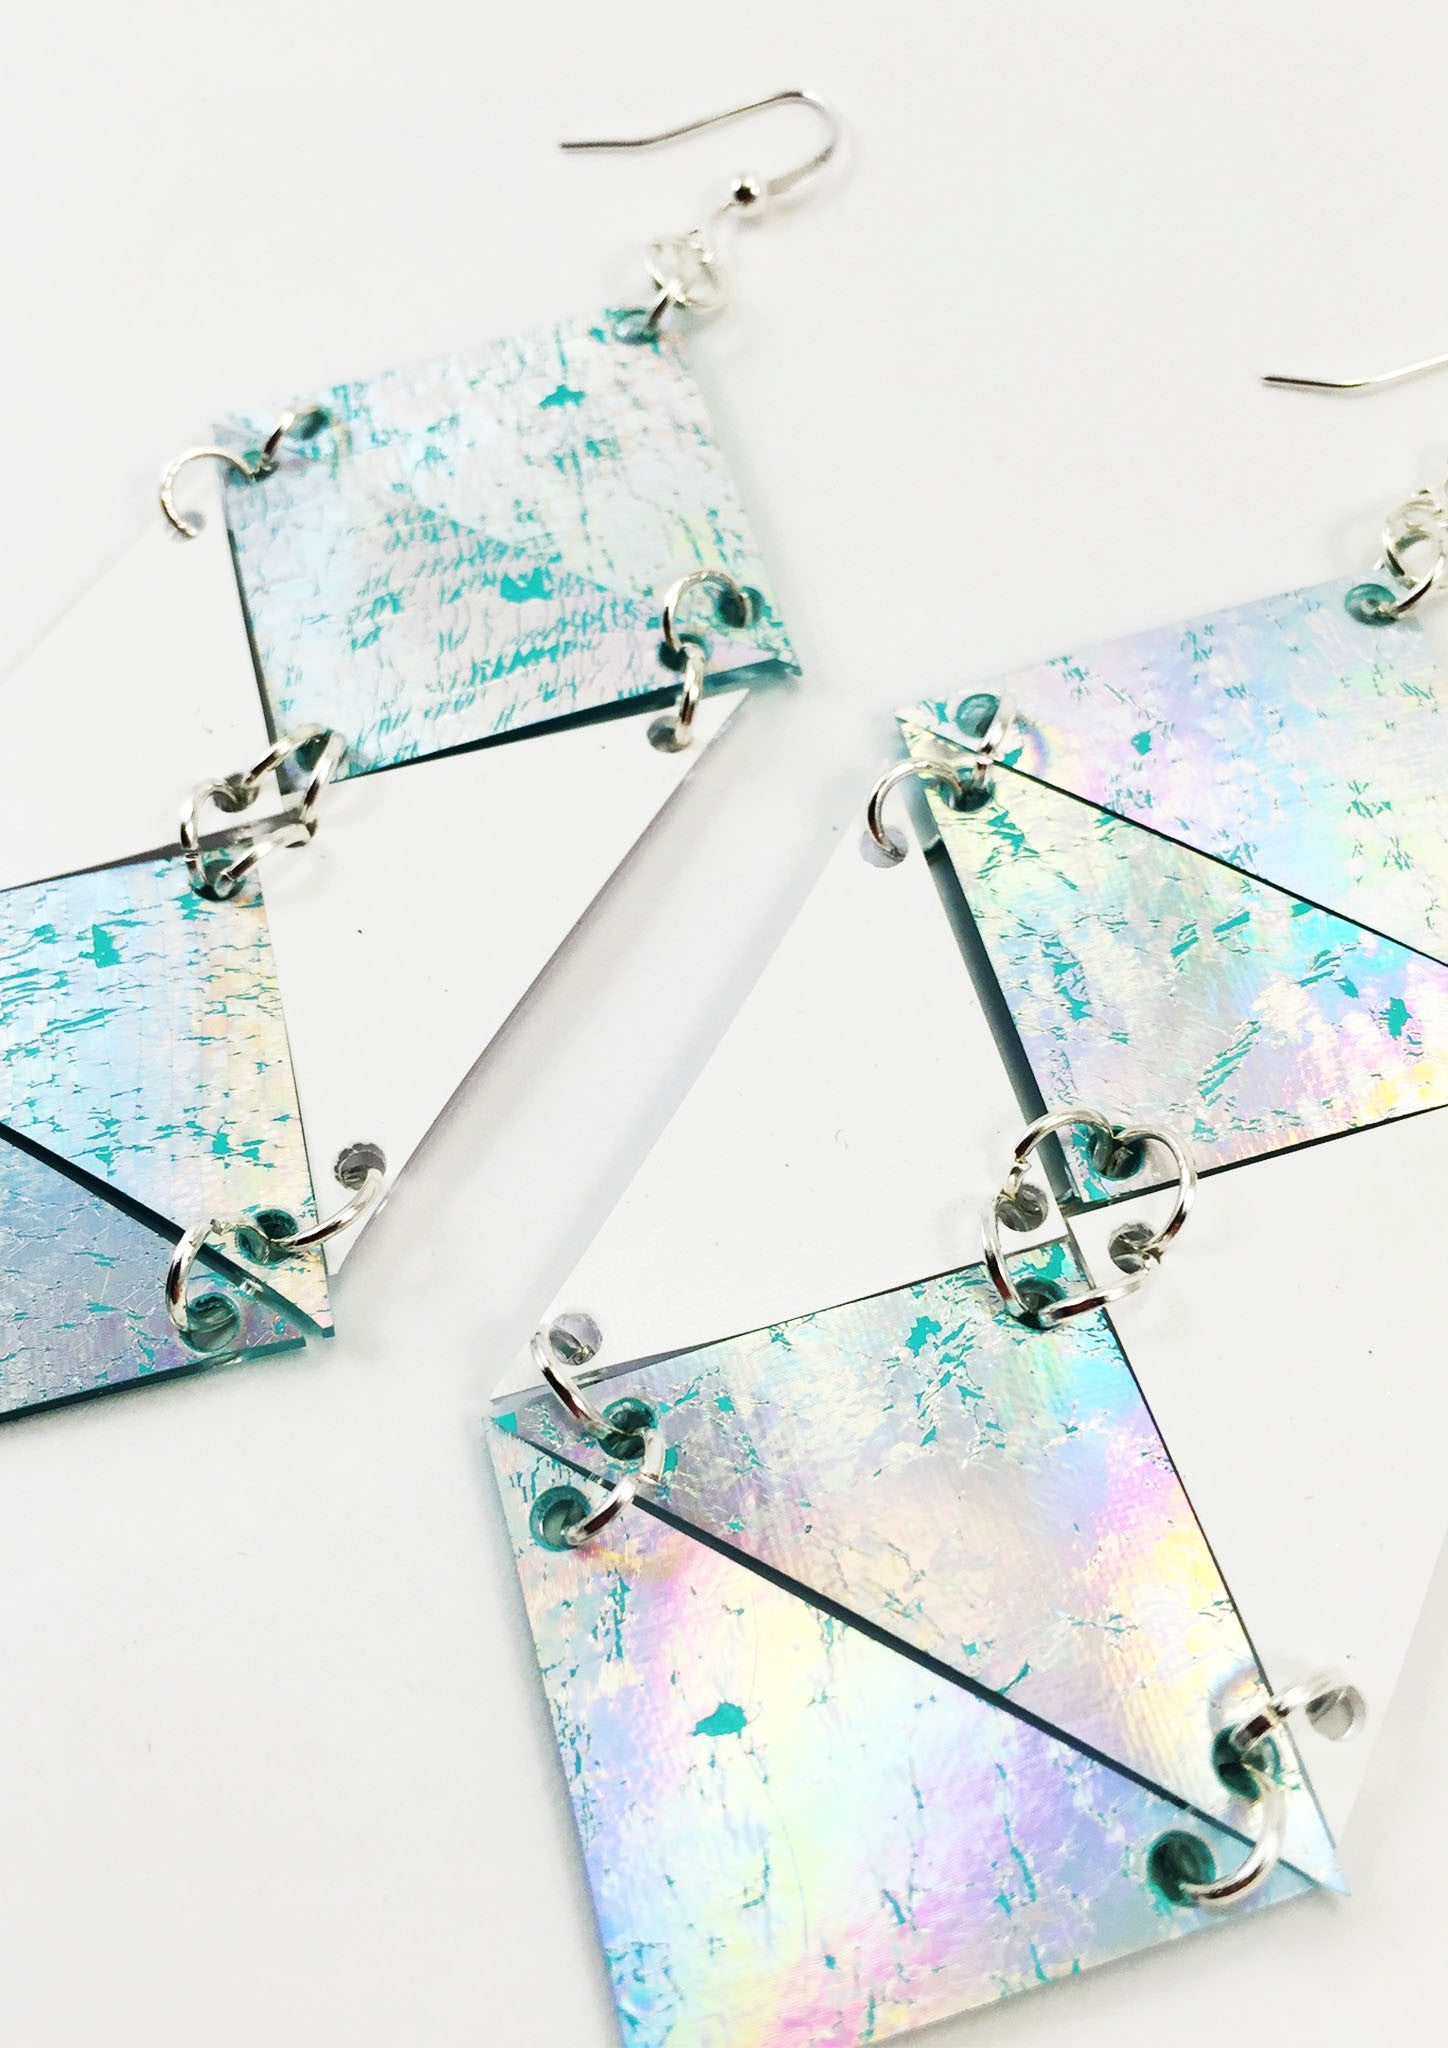 HOLOGRAPHIC CHAIN LINK EARRINGS